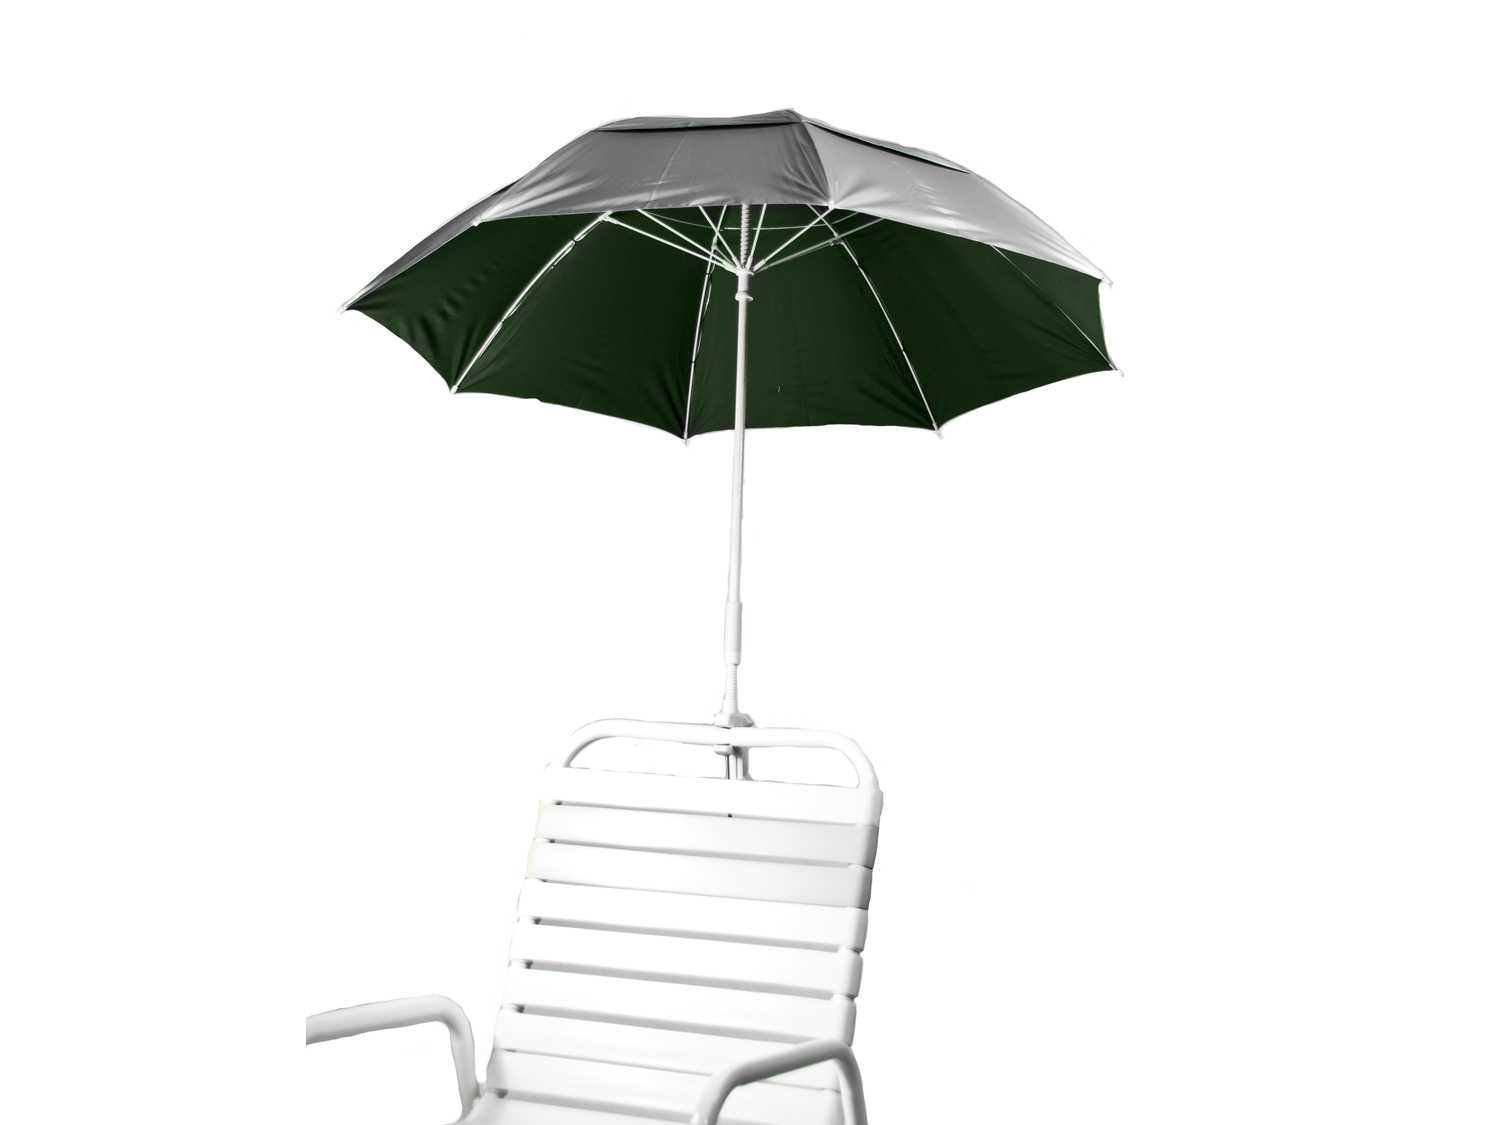 Clamp On Chair Umbrella Frankford Beach Lifeguard Fiberglass 3 6 Foot Wide Octagon Manual Clamp Attachment Umbrella